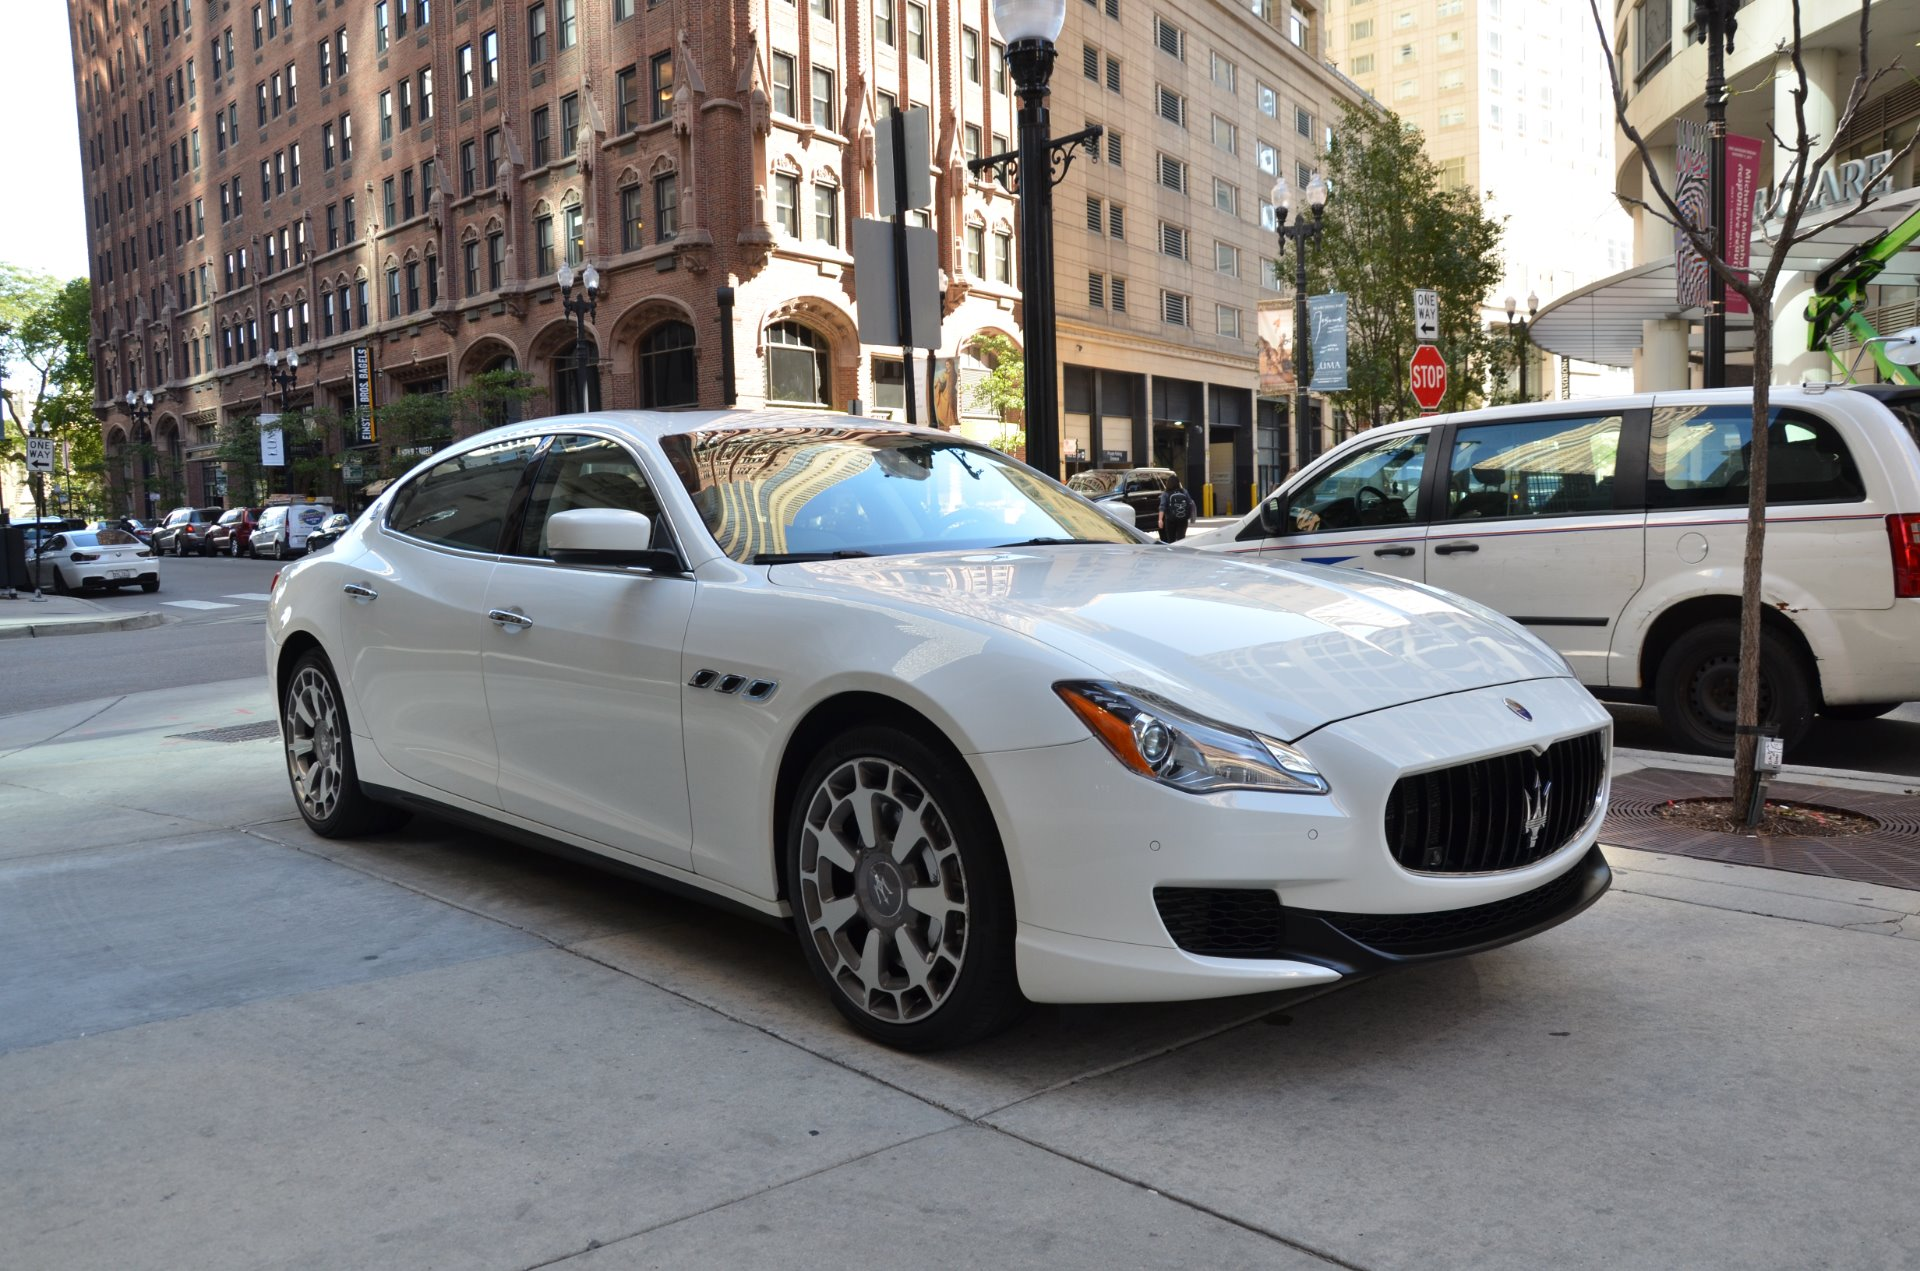 2014 maserati quattroporte gts sport gt s stock r448a for sale near chicago il il maserati. Black Bedroom Furniture Sets. Home Design Ideas